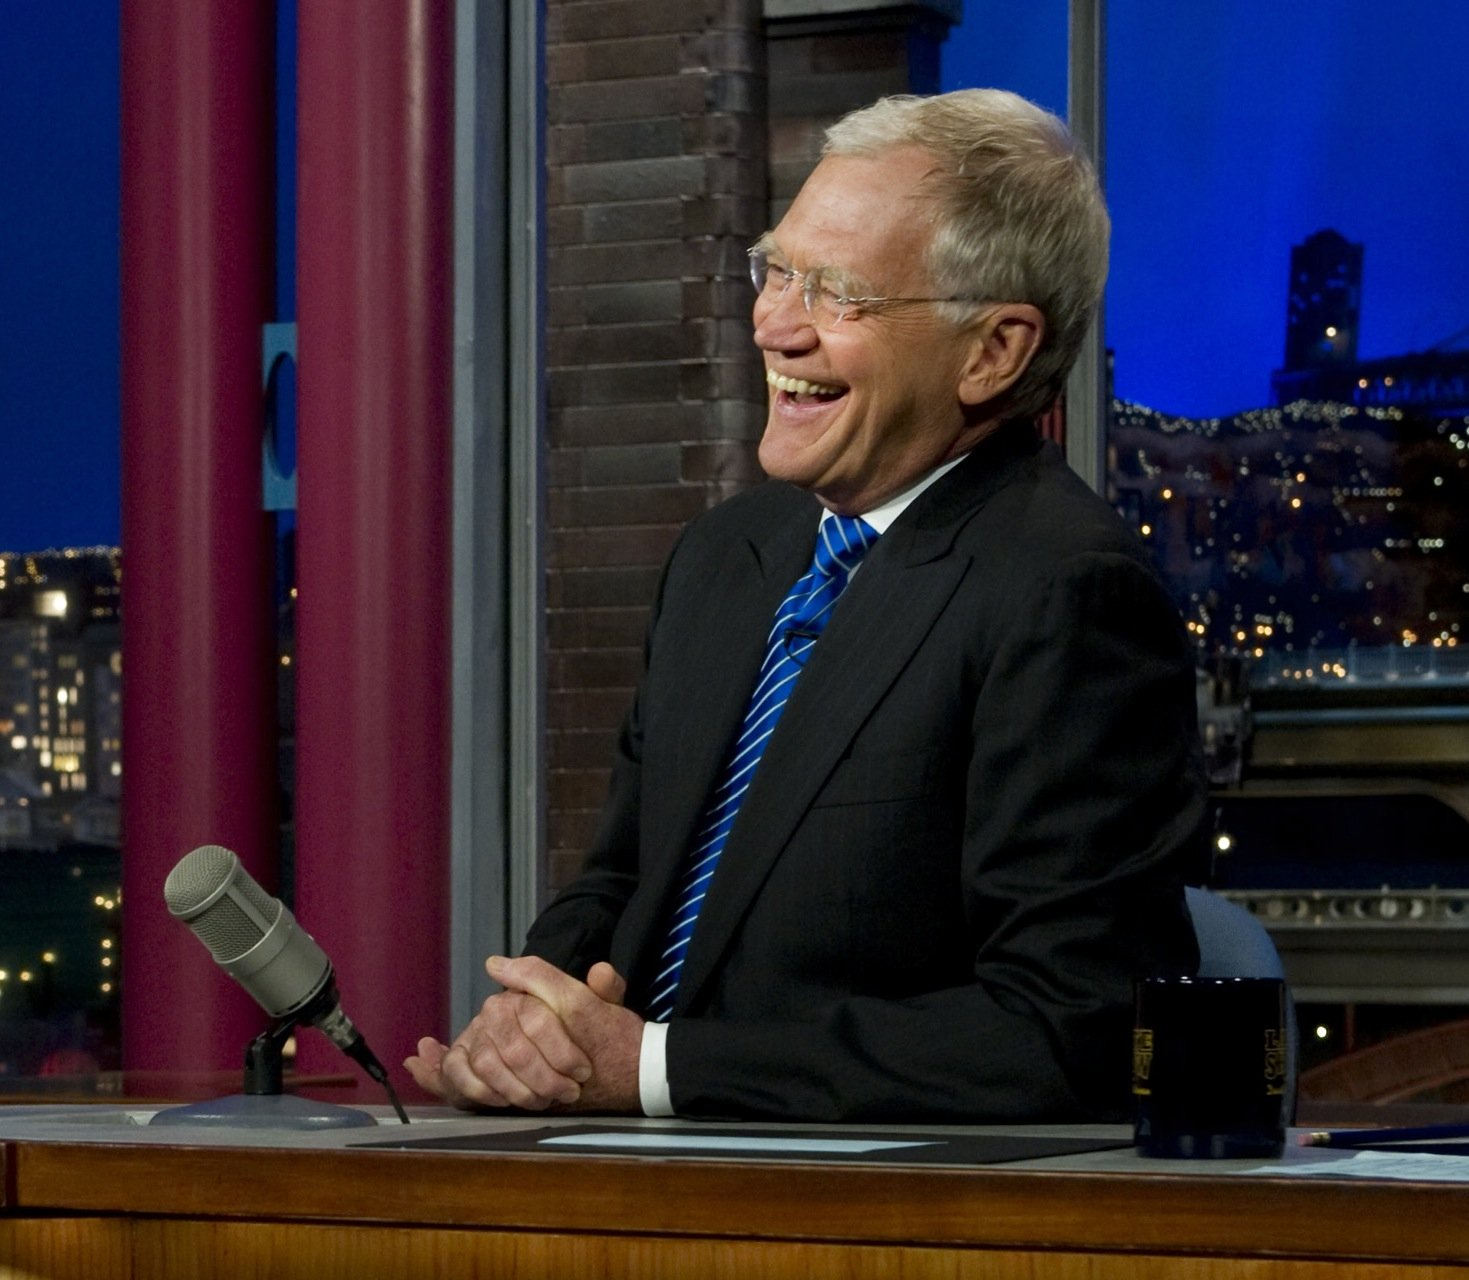 David Letterman Image Source: Wikimedia Commons.